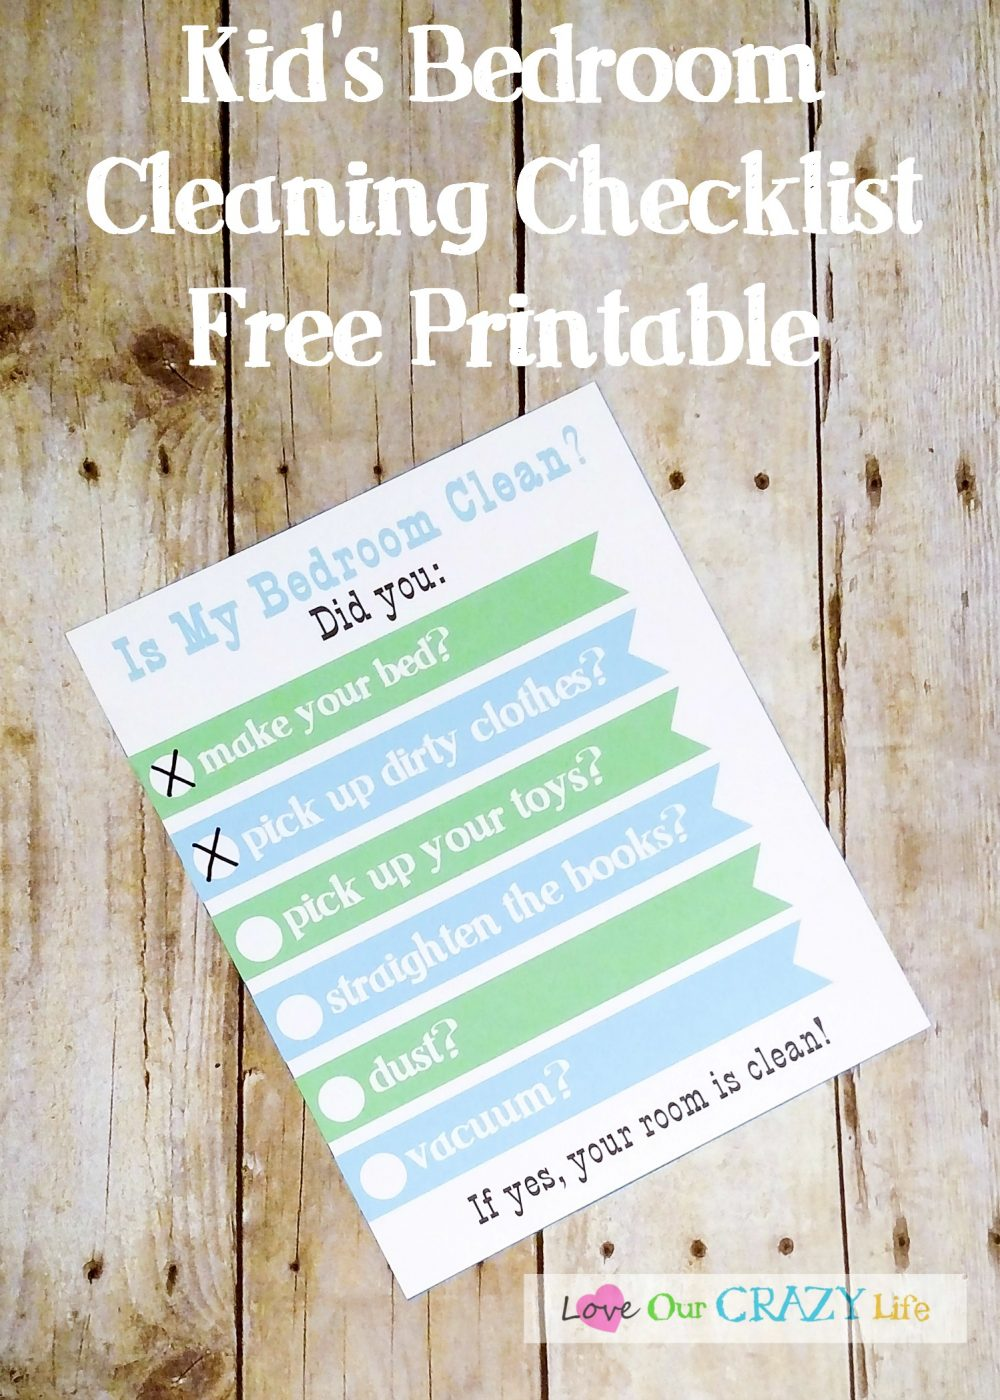 Free Kid's bedroom cleaning checklist